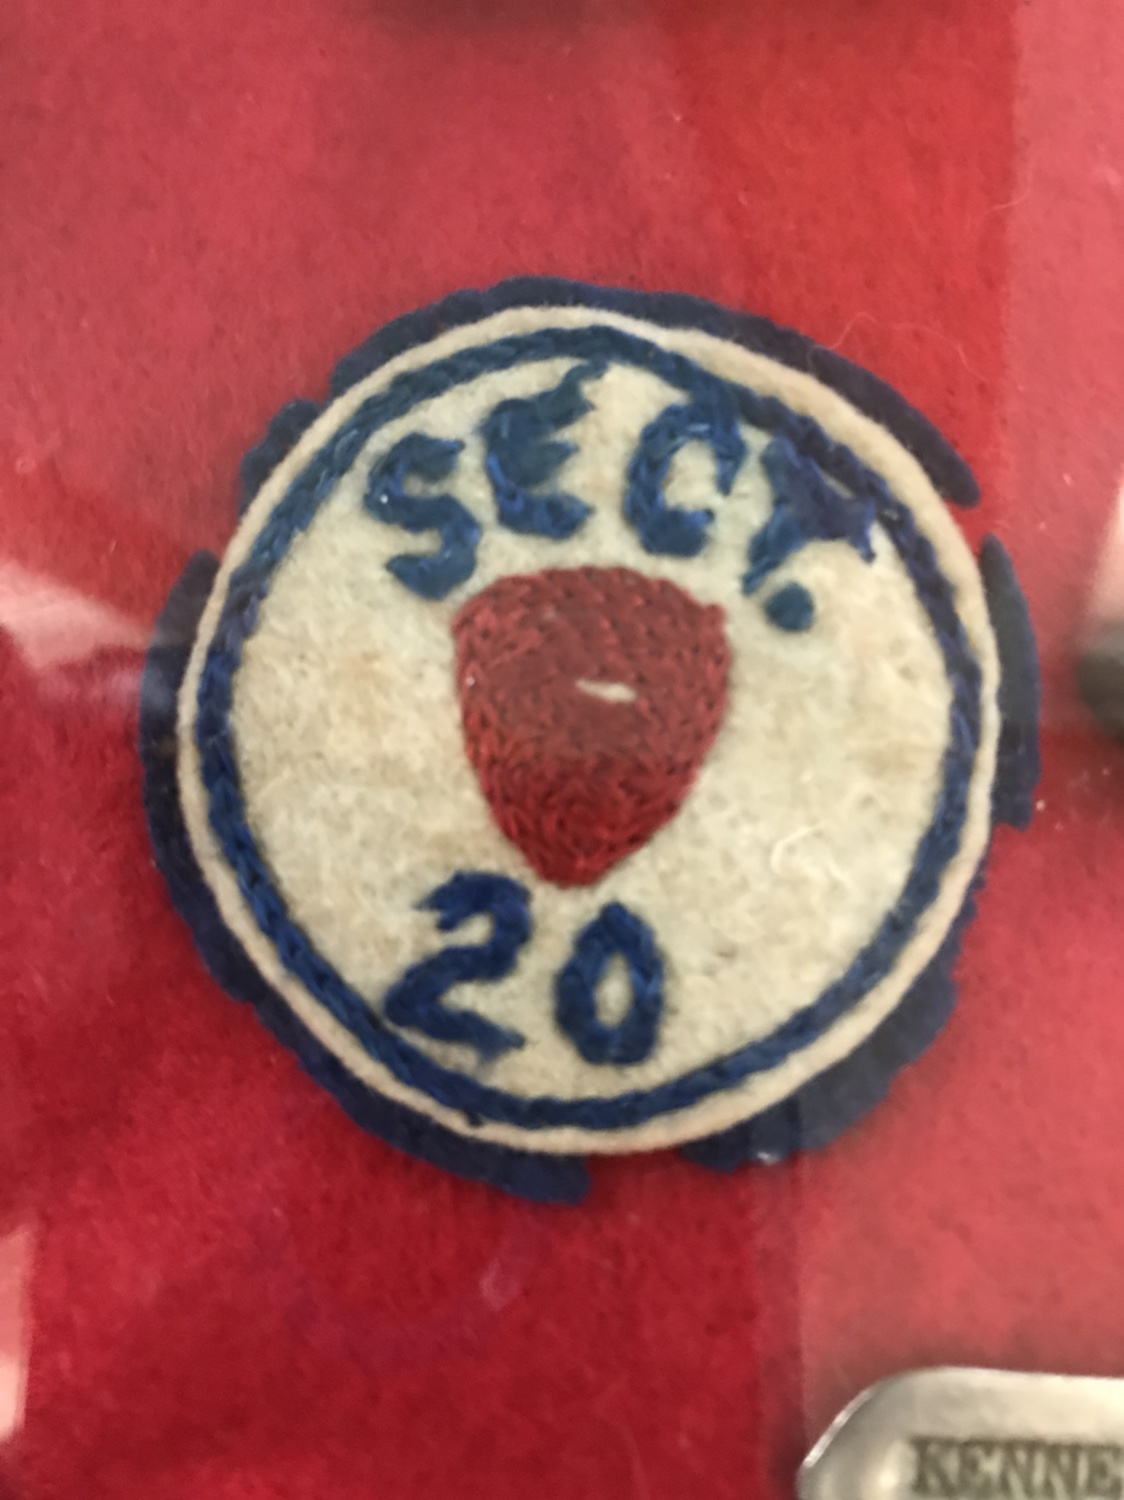 Sect  20 patch? Identification - ARMY AND USAAF - U S  Militaria Forum